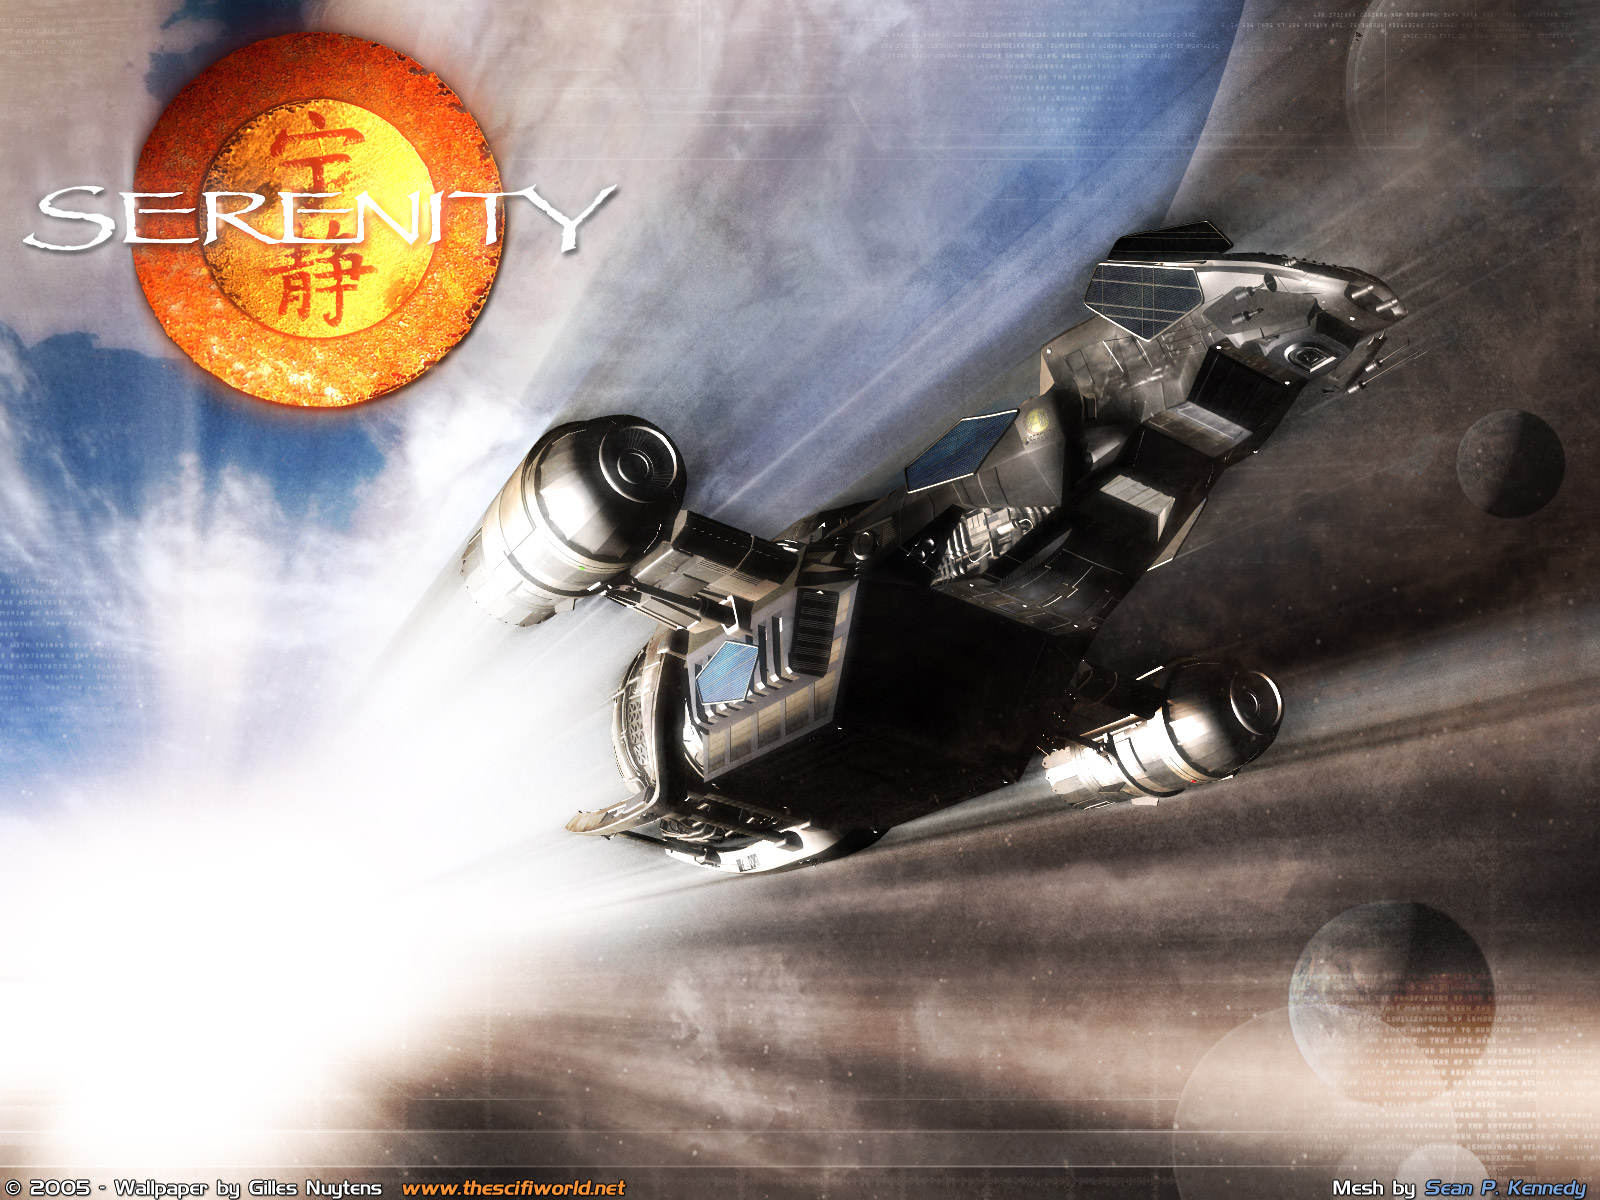 firefly serenity wallpaper table 3 - photo #16